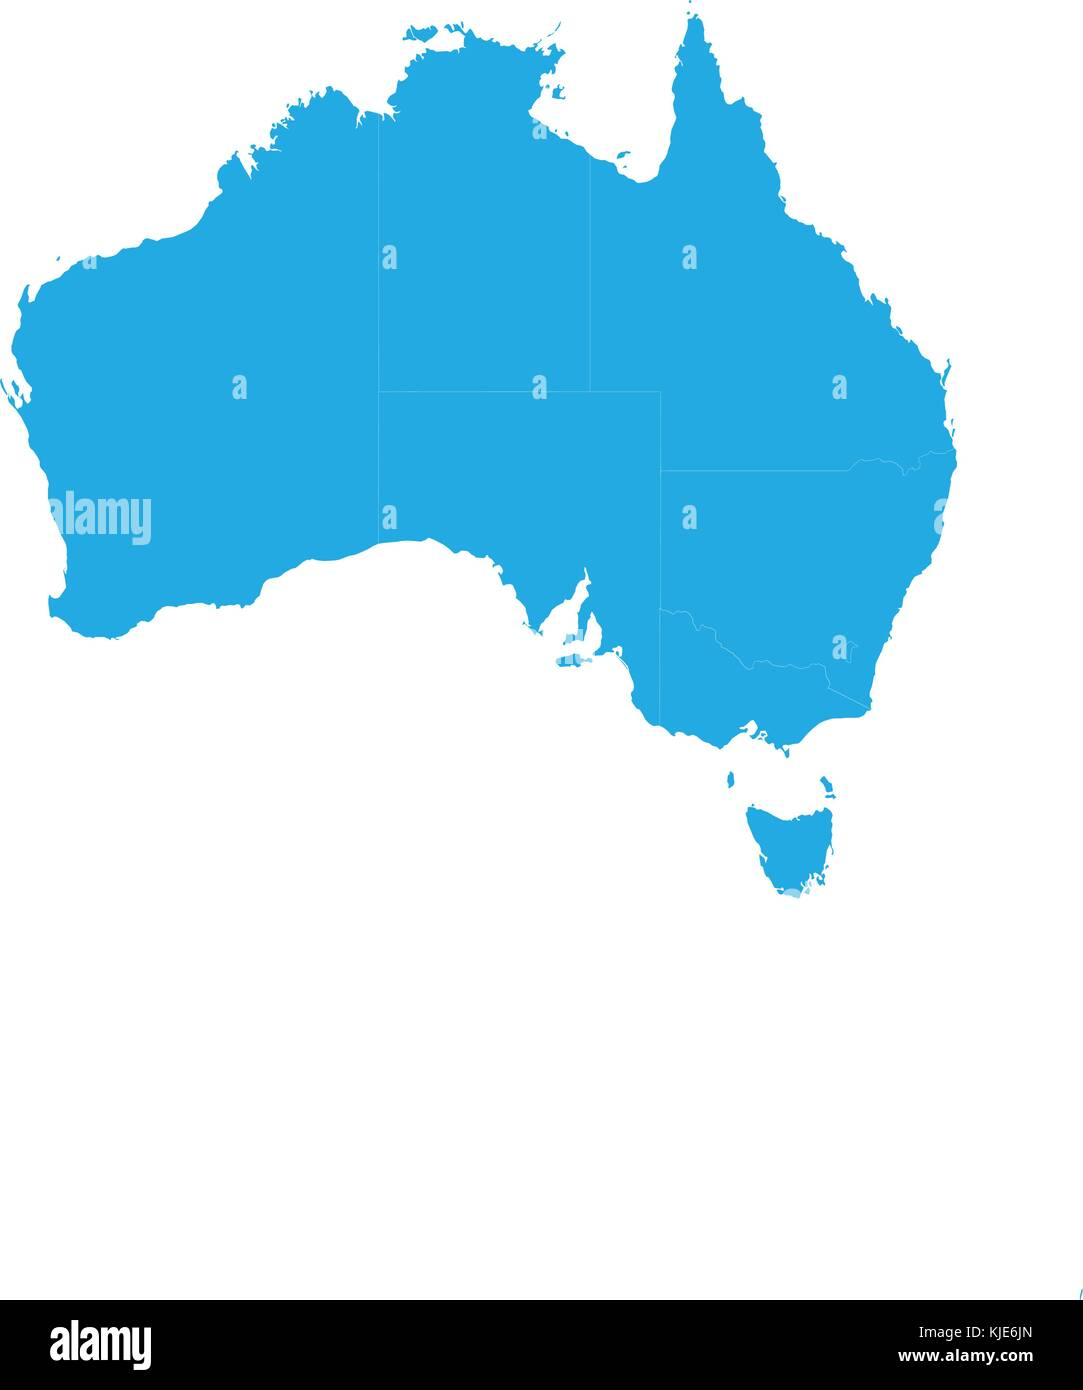 Australia Map Vector.Map Of Australia High Detailed Vector Map Australia Flat High